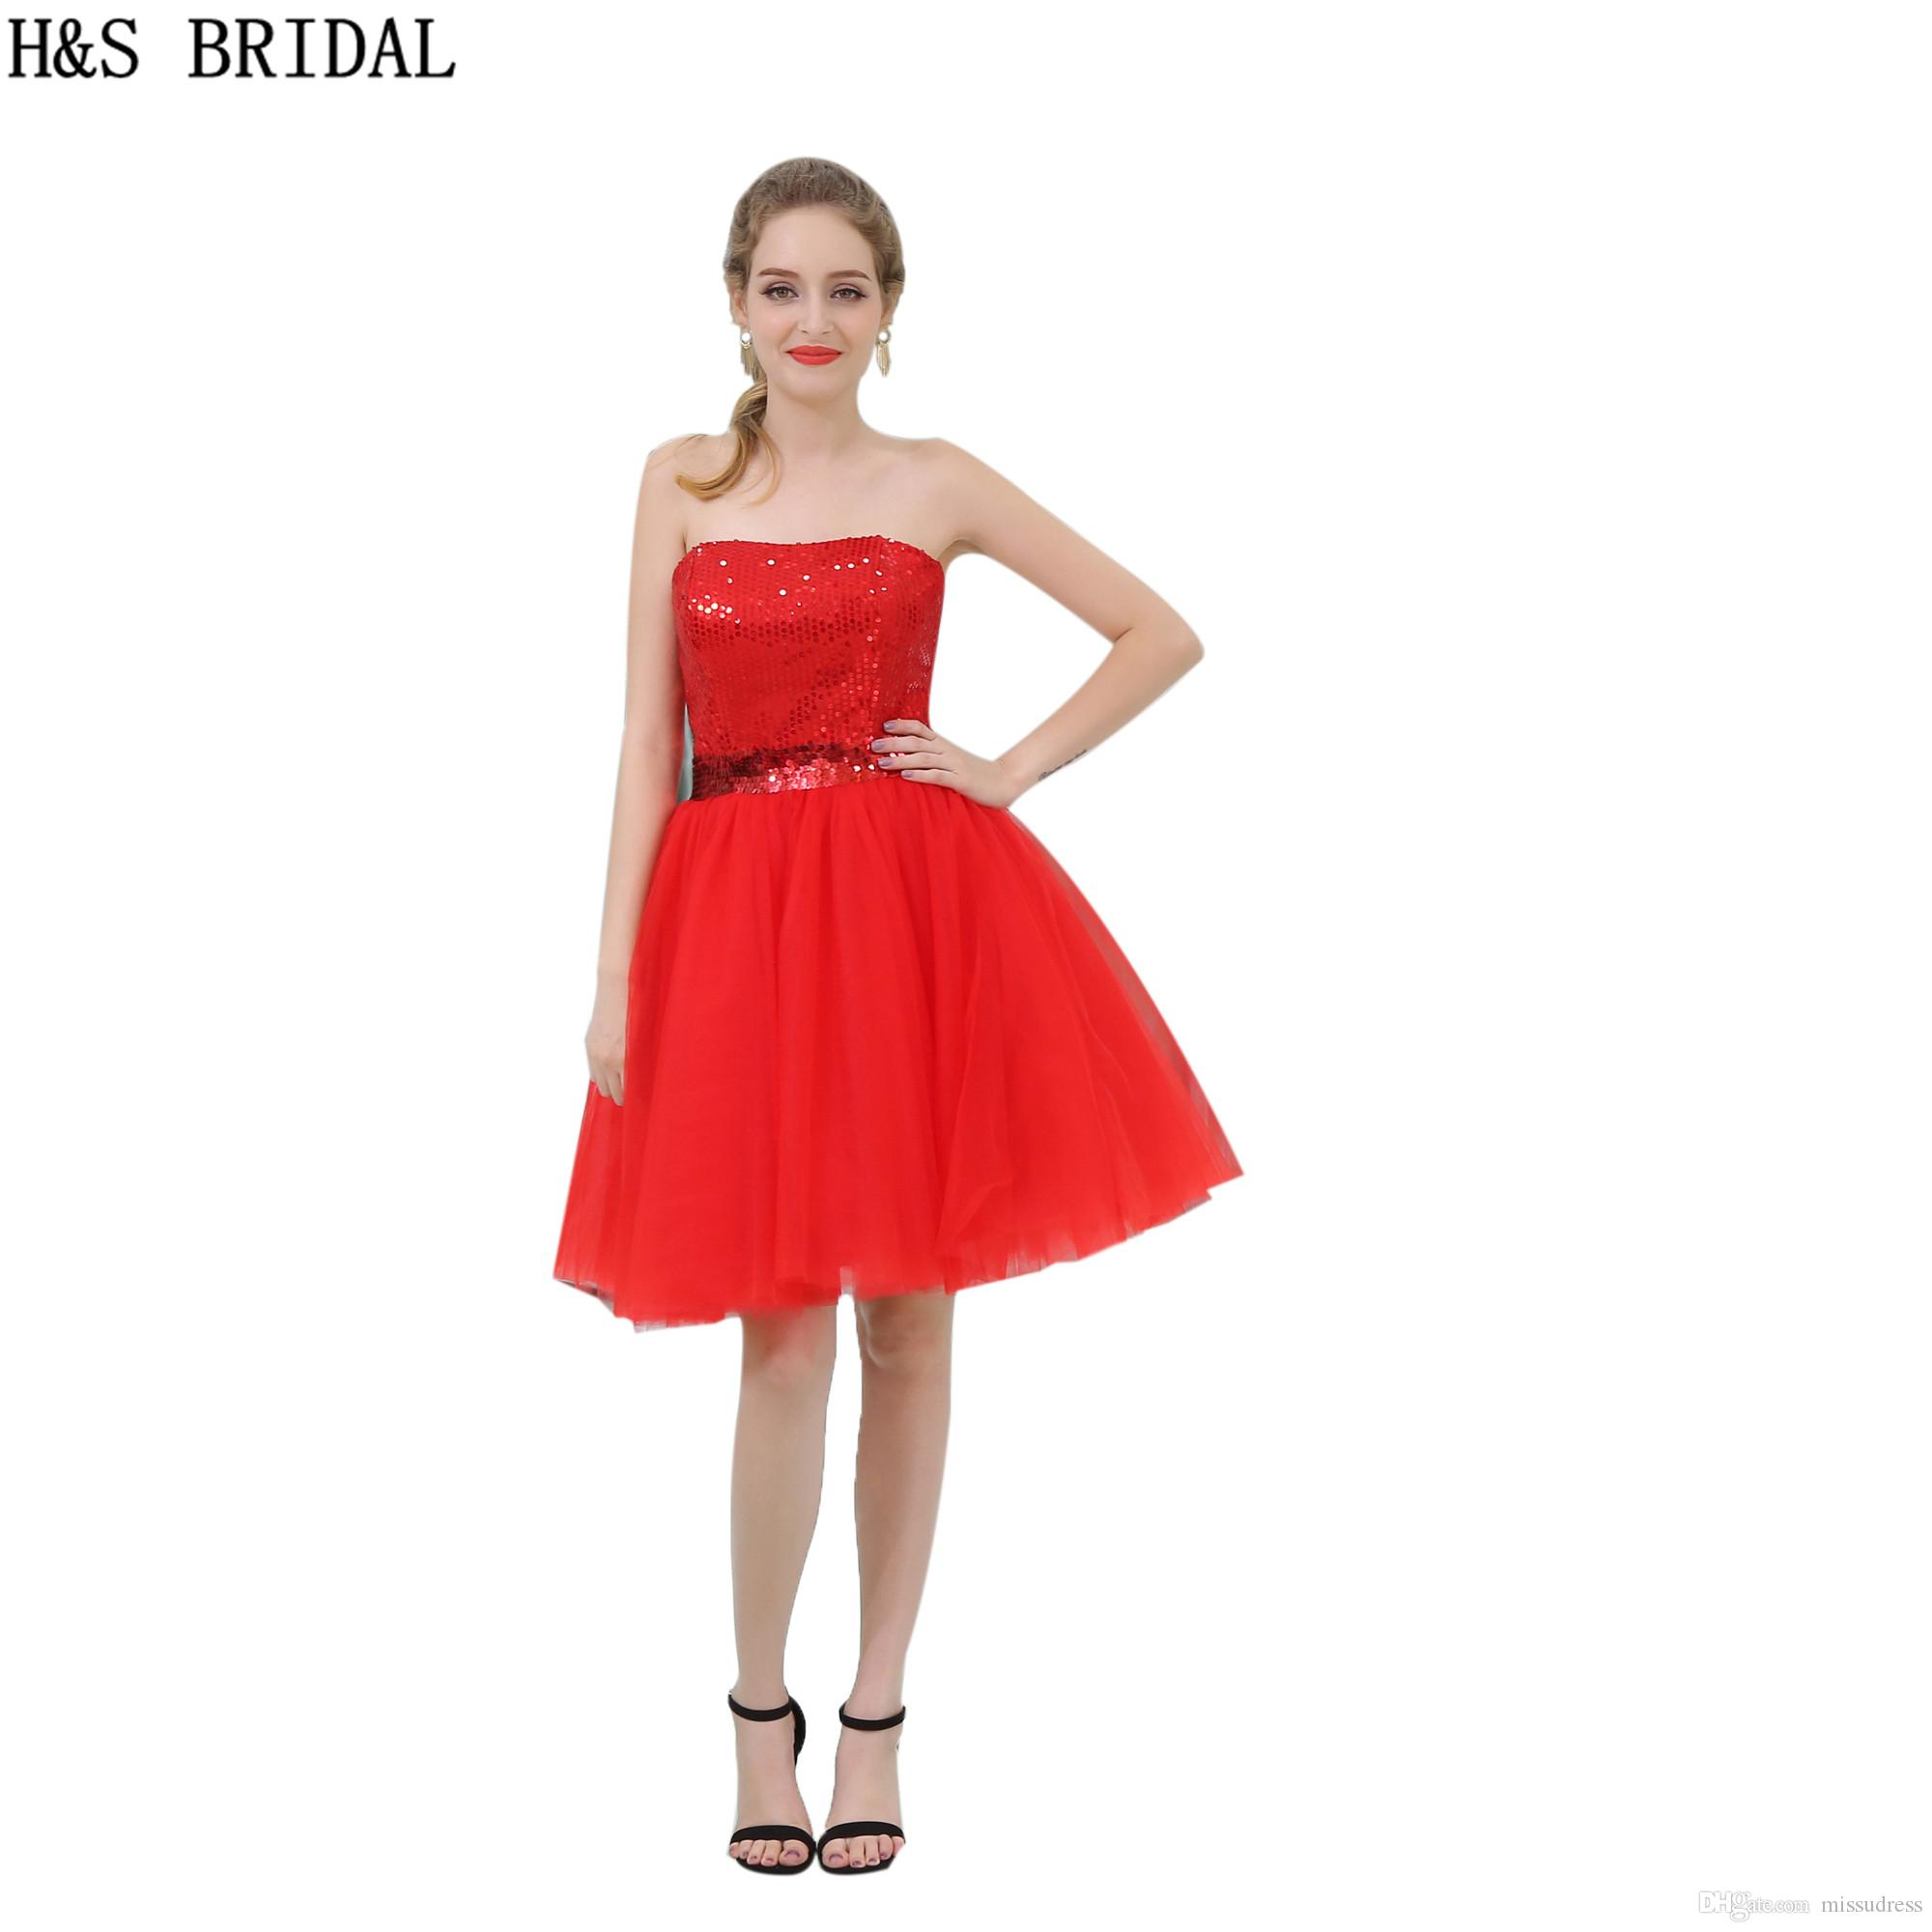 9fc4afe455 Seuiqns Short Prom Dresses Red Strapless Sequins Belt Girls Puffy Party Cocktail  Gowns Evening Dresses B054 Prom Dresses Liverpool Prom Dresses Under 150 ...